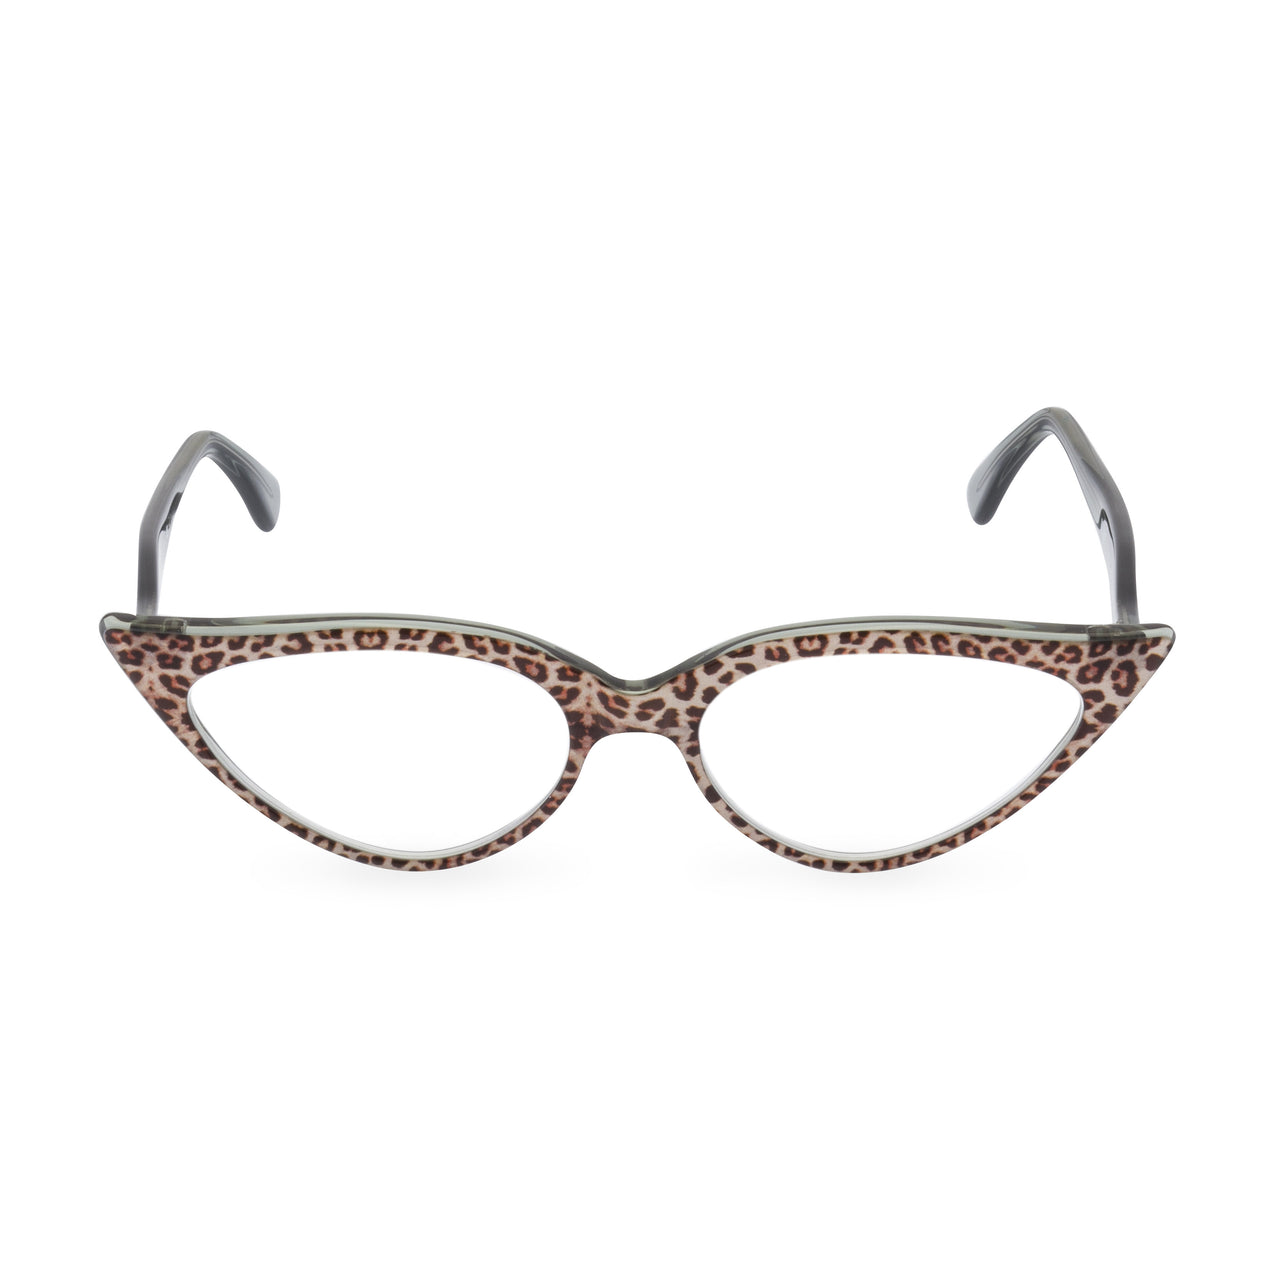 Retropeepers Jeanne Jaguar, 50's style cat eye glasses, front view